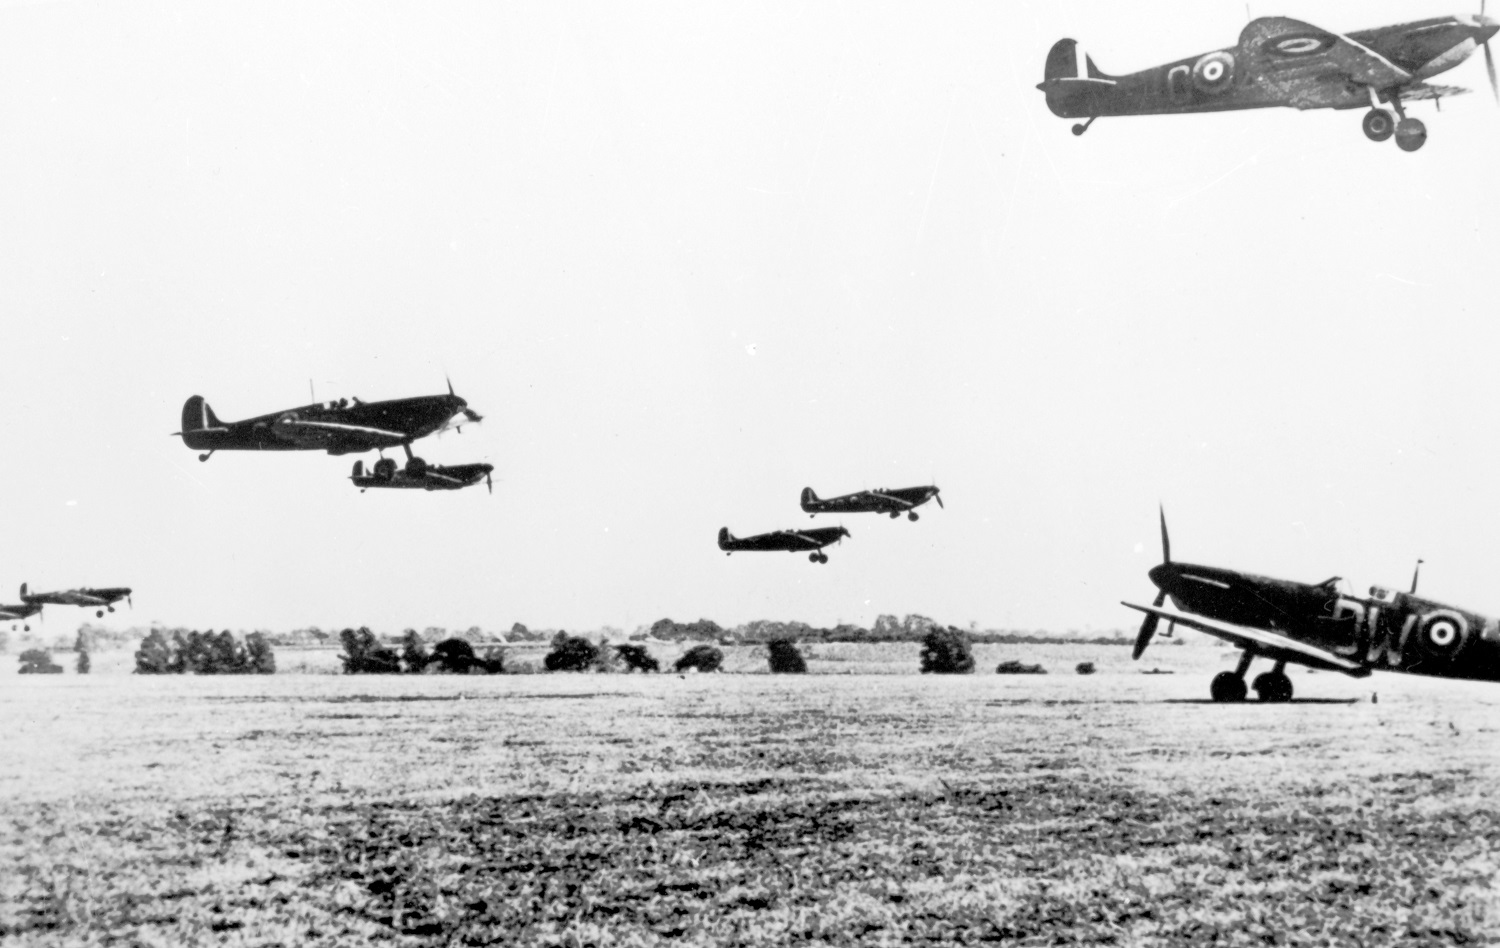 Spitfires in the Battle of Britain